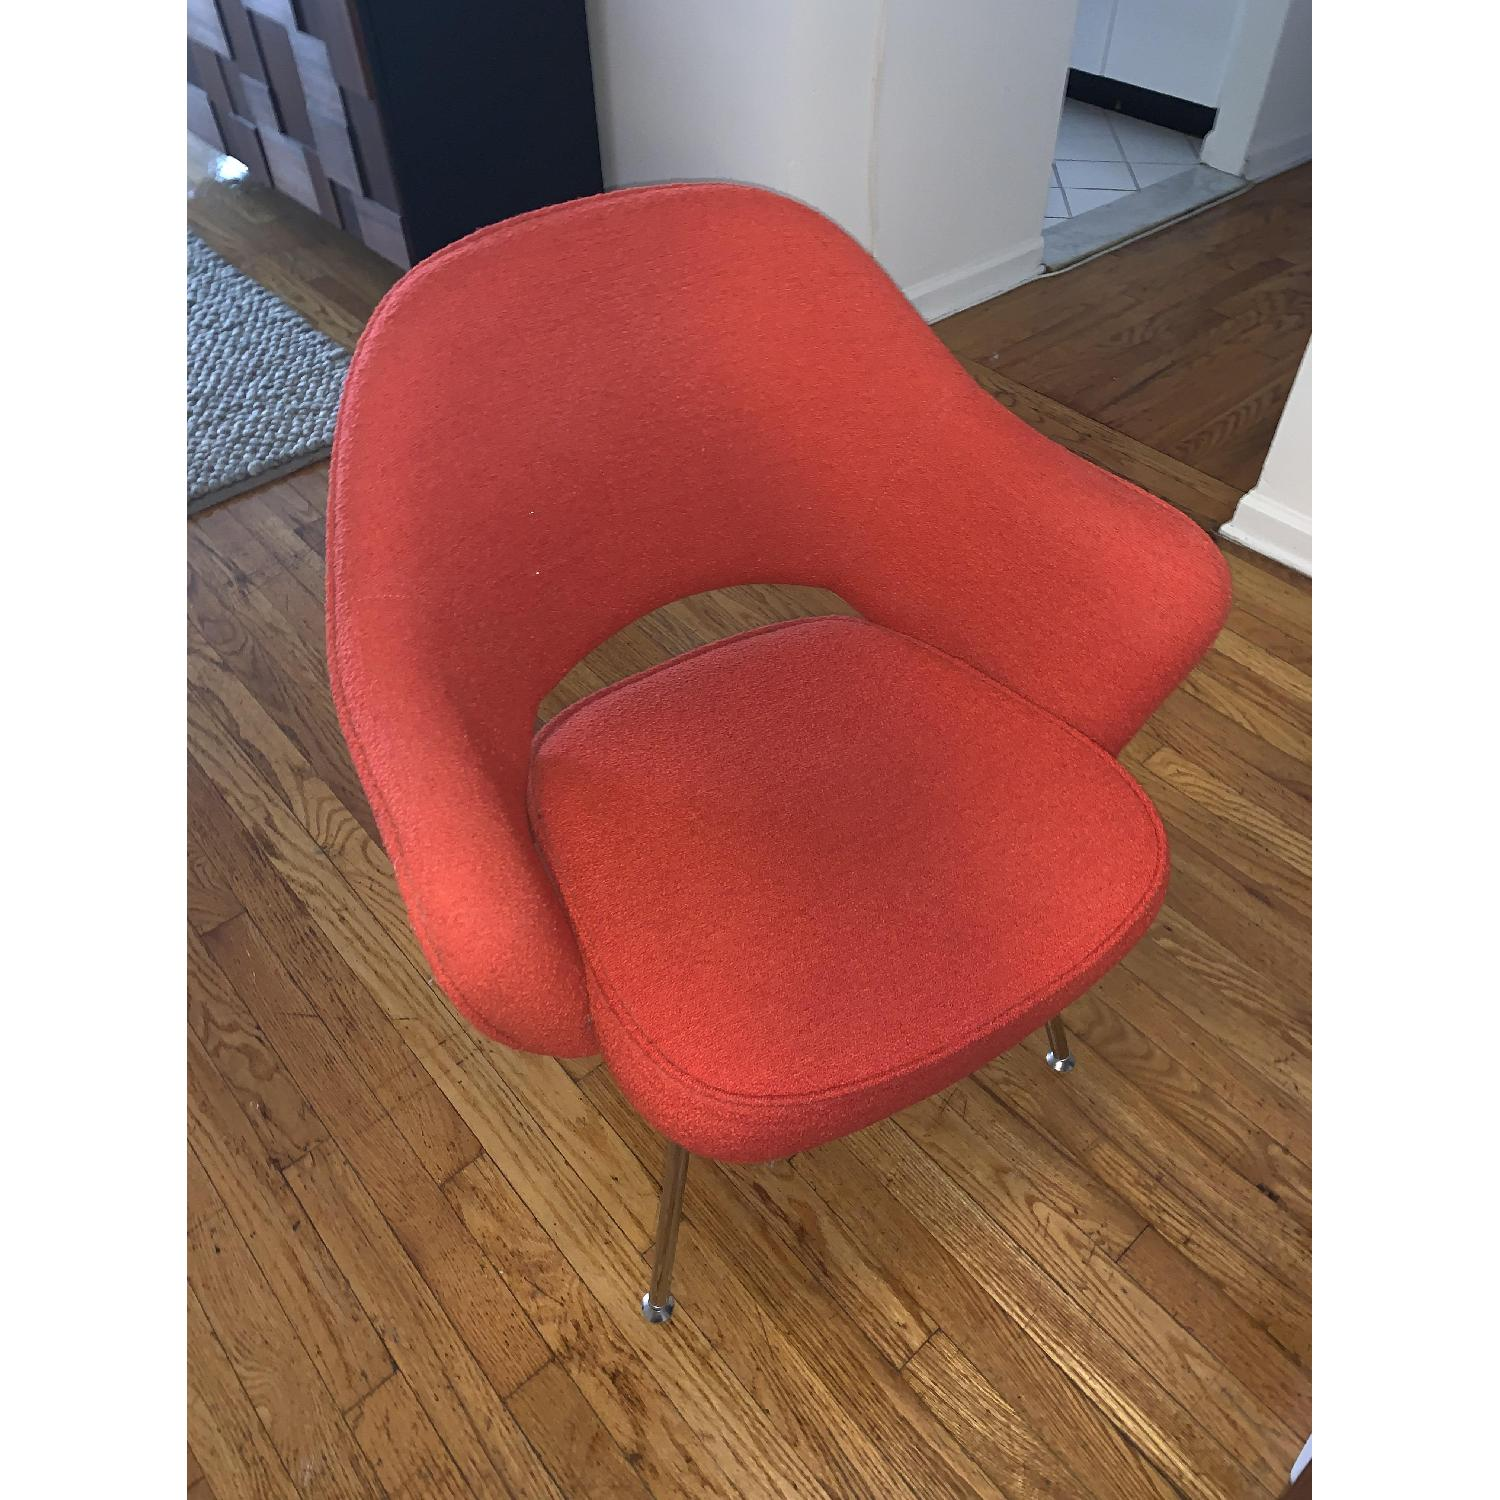 Knoll Saarinen Executive Chair in Red/Burnt Orange-1